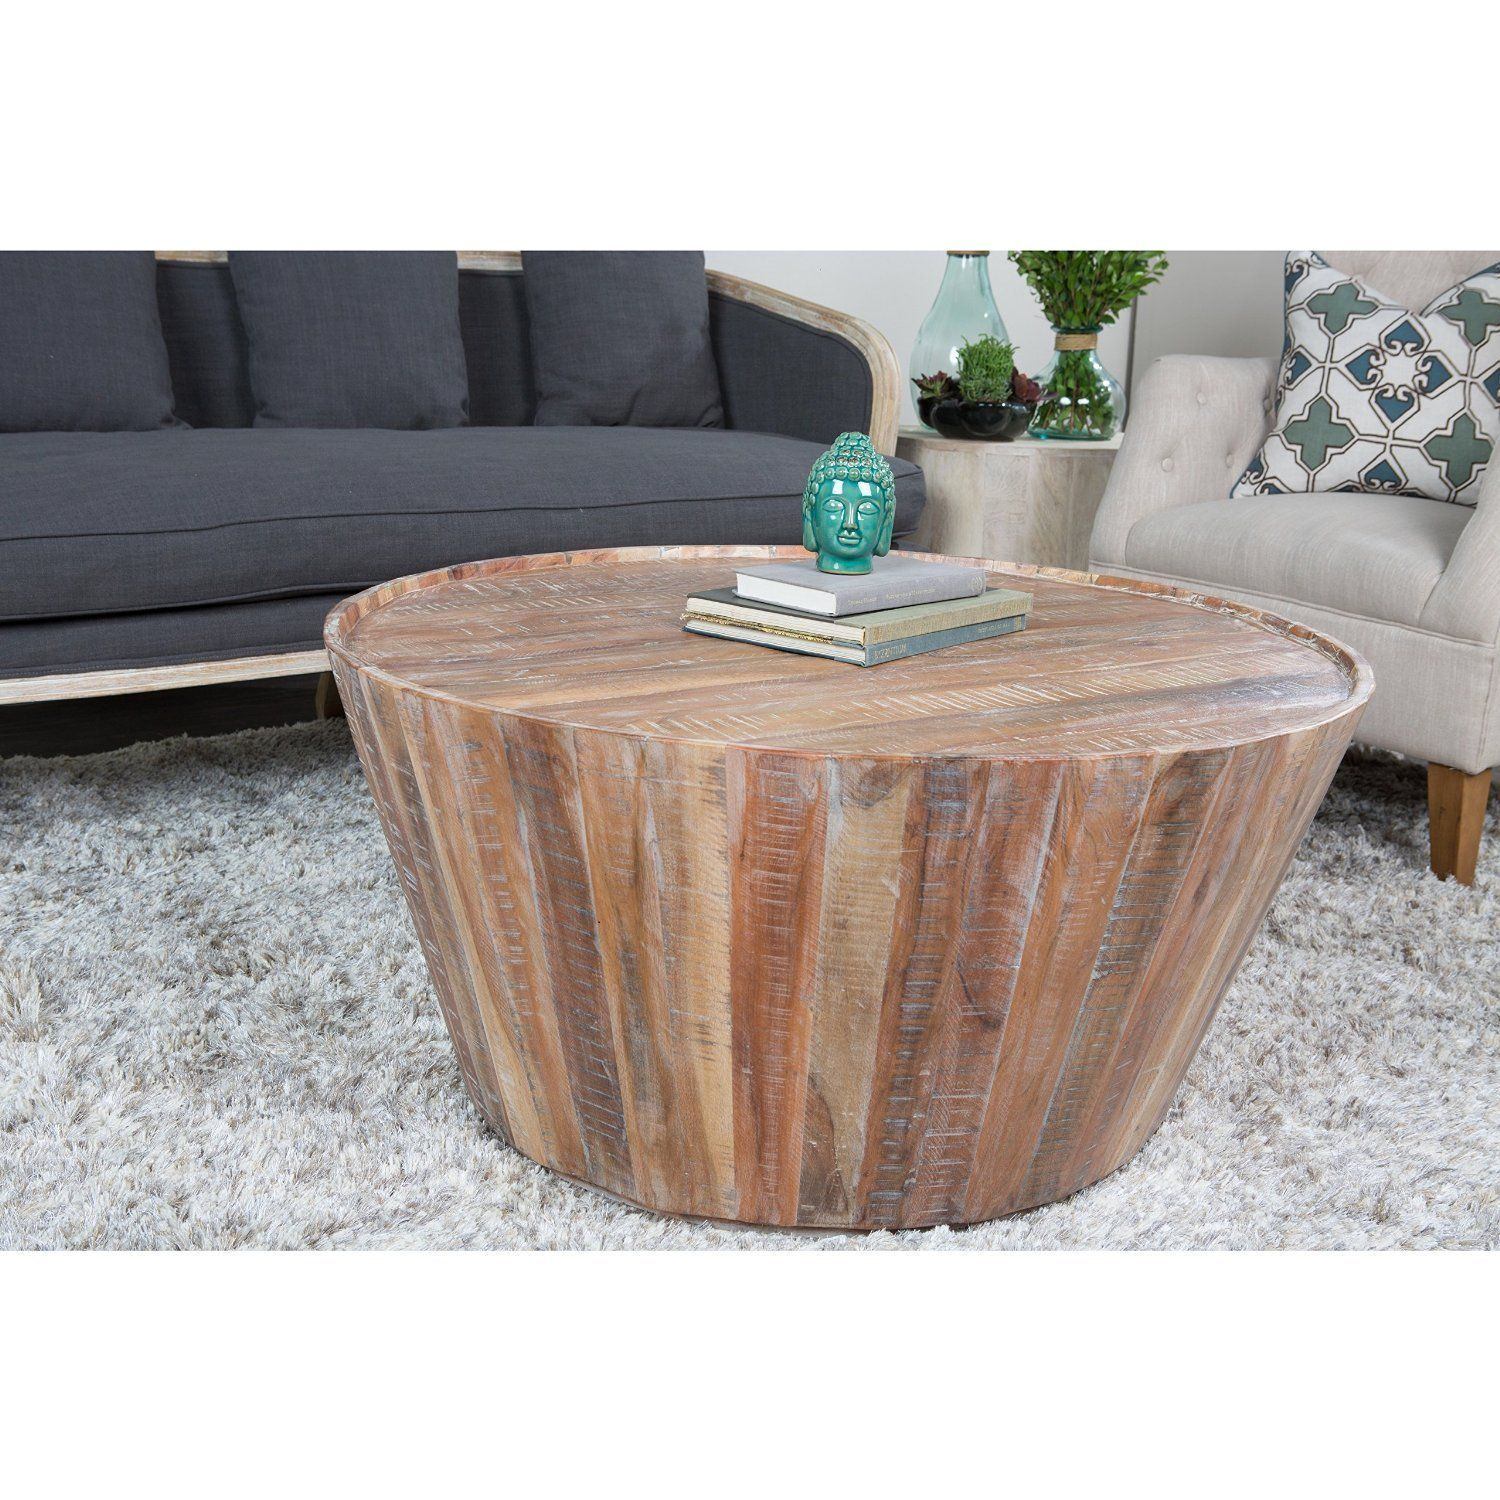 Robot Check Coffee Table Coffee Table Design Barrel Coffee Table [ 1500 x 1500 Pixel ]